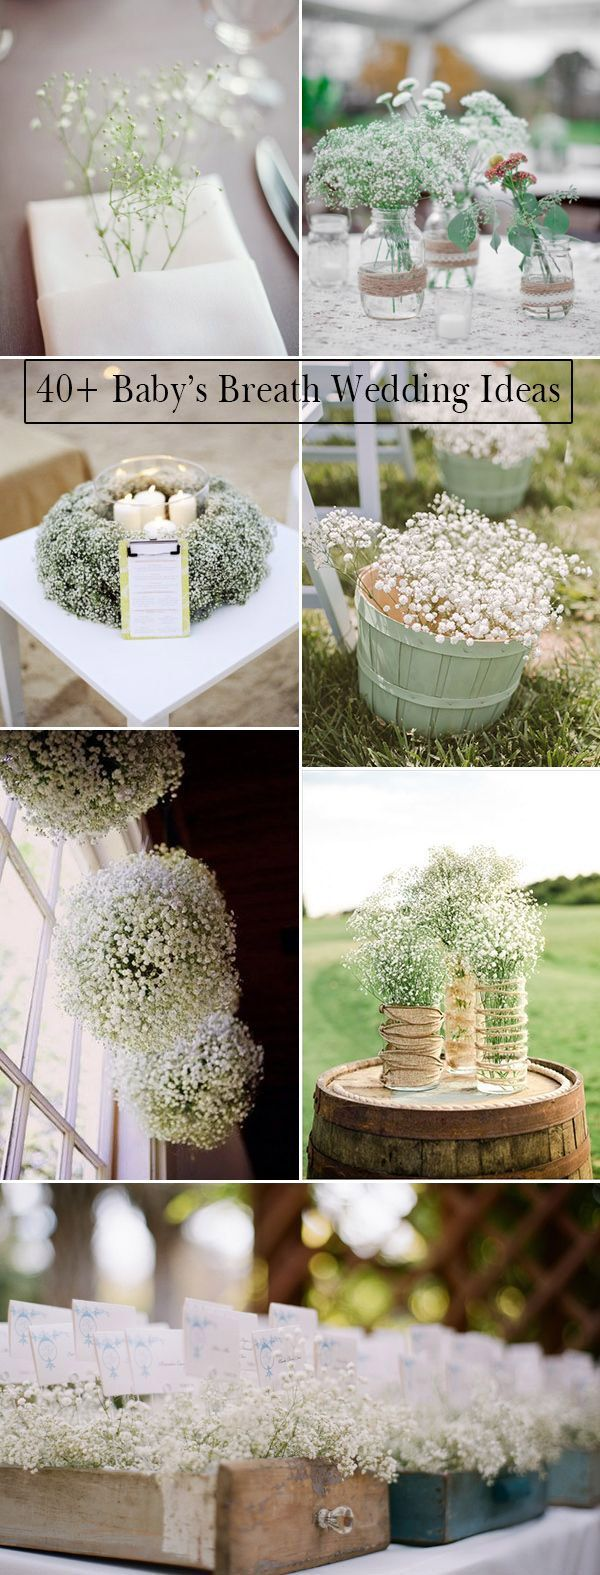 unique wedding ideas with baby's breath and gypsophila decorations